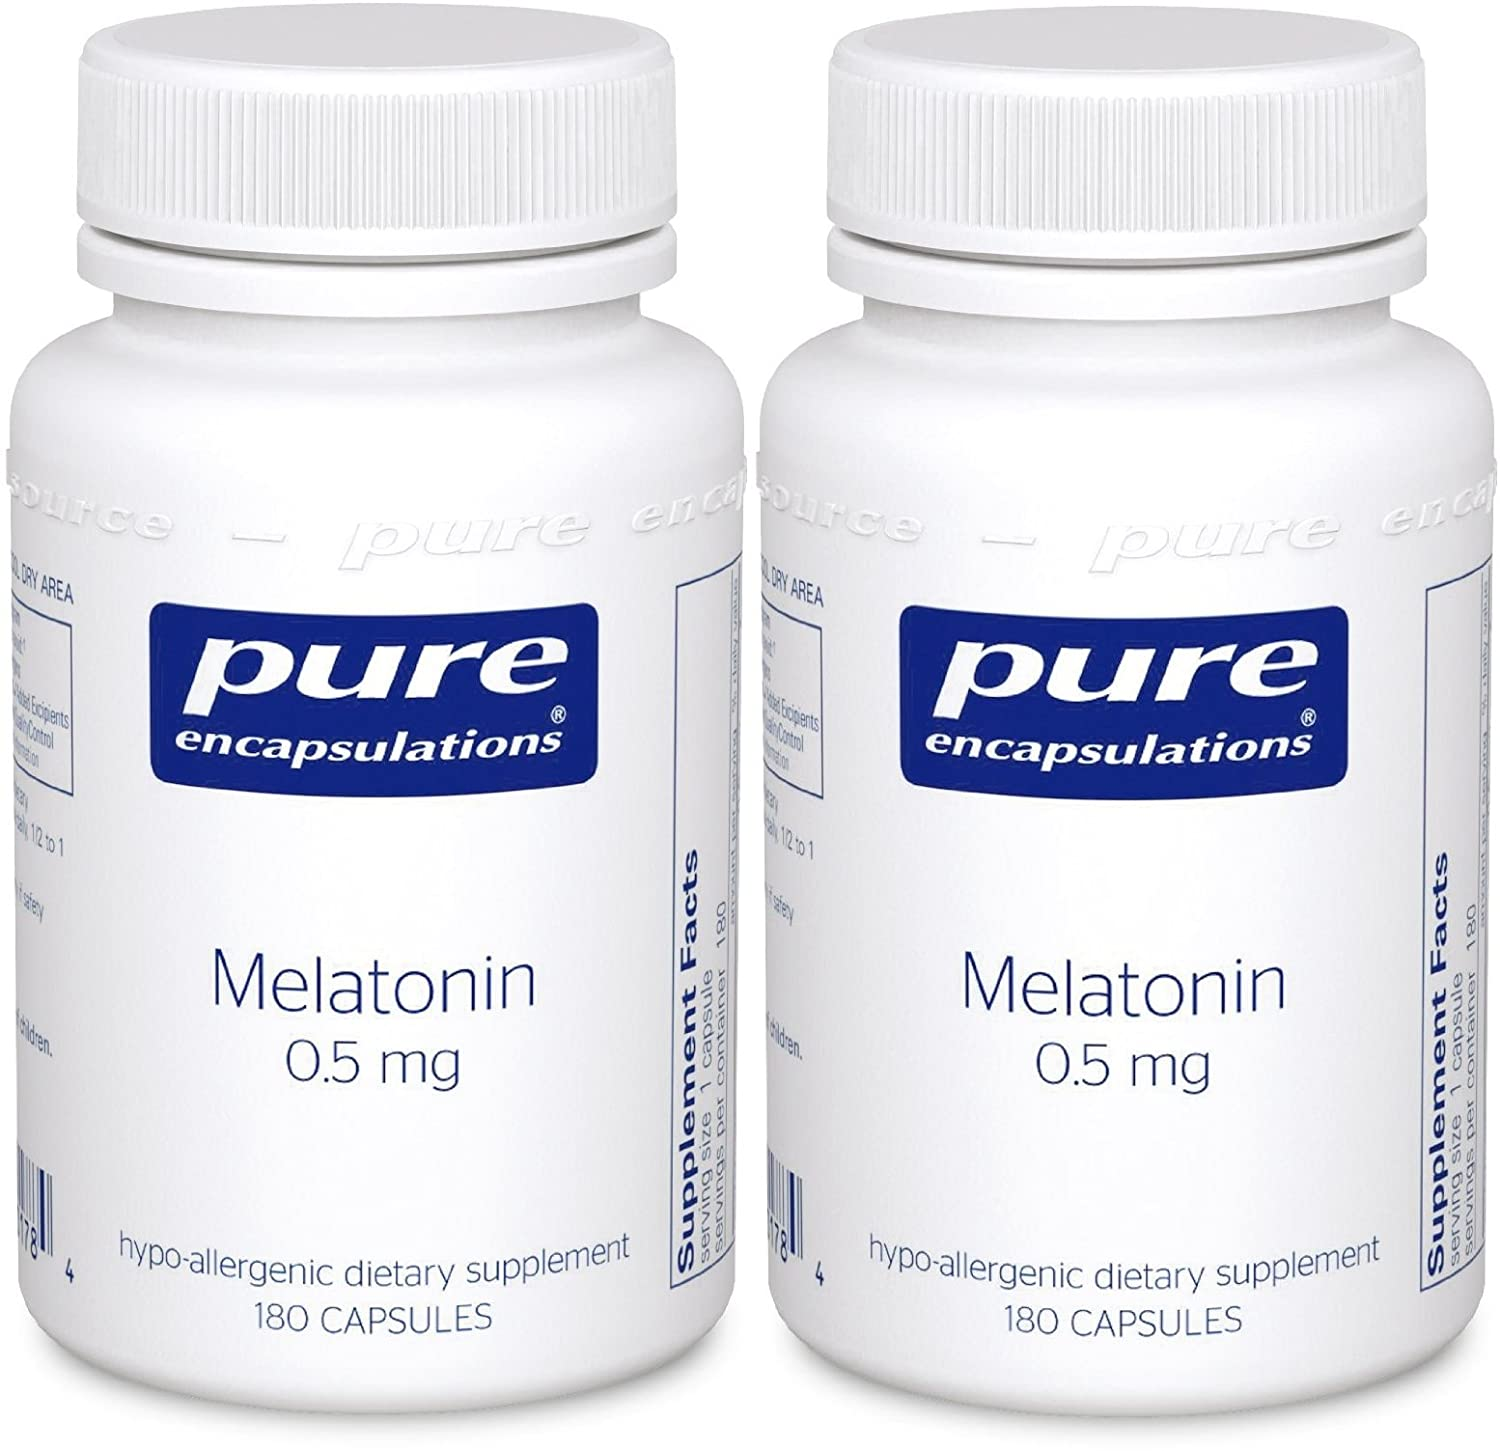 Amazon.com: Pure Encapsulations - Melatonin 0.5mg 180c - 2 Pack: Health & Personal Care